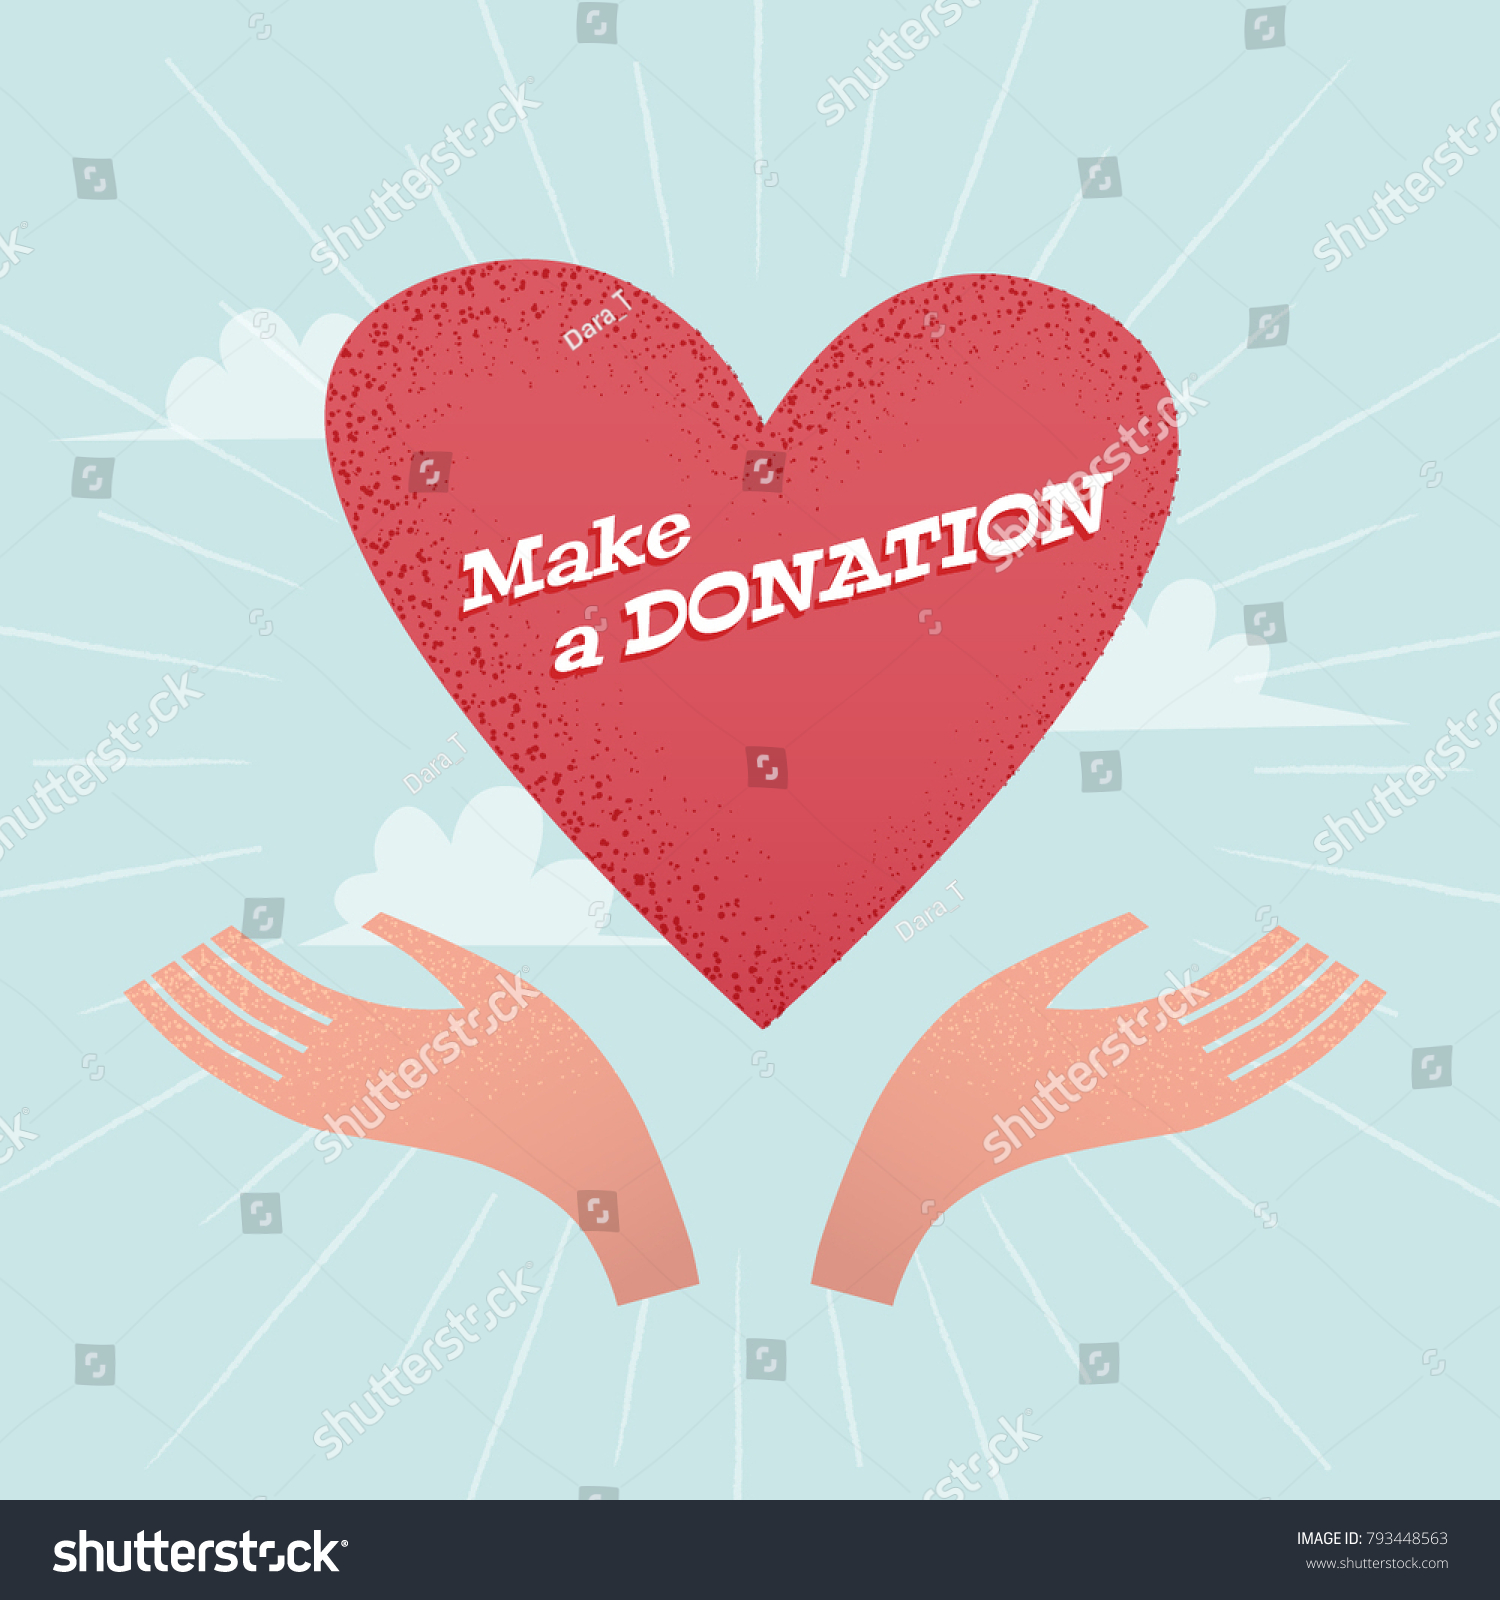 Heart in hand symbol image collections symbol and sign ideas heart hand symbol logo template charity stock vector 793448563 heart in hand symbol logo template for buycottarizona